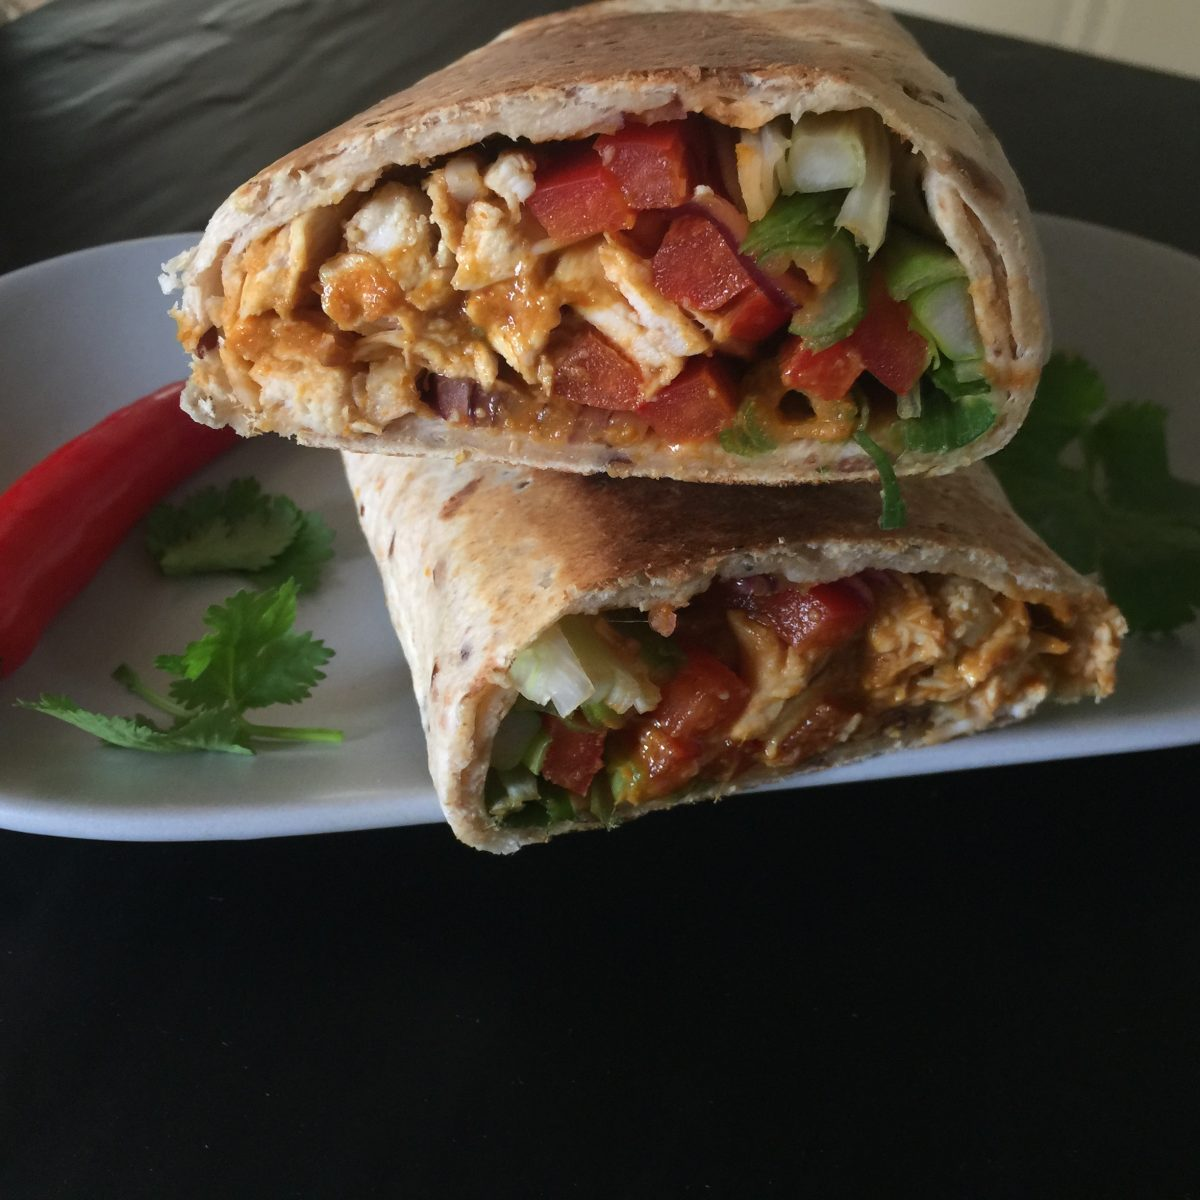 Satay Chicken Toasted wrap by cookingmealsforone.com is made by combining a good quality satay sauce with cooked chicken and placing in a wrap with slices of red capsicum-green onion wrapped tight and toasted in a sandwich press